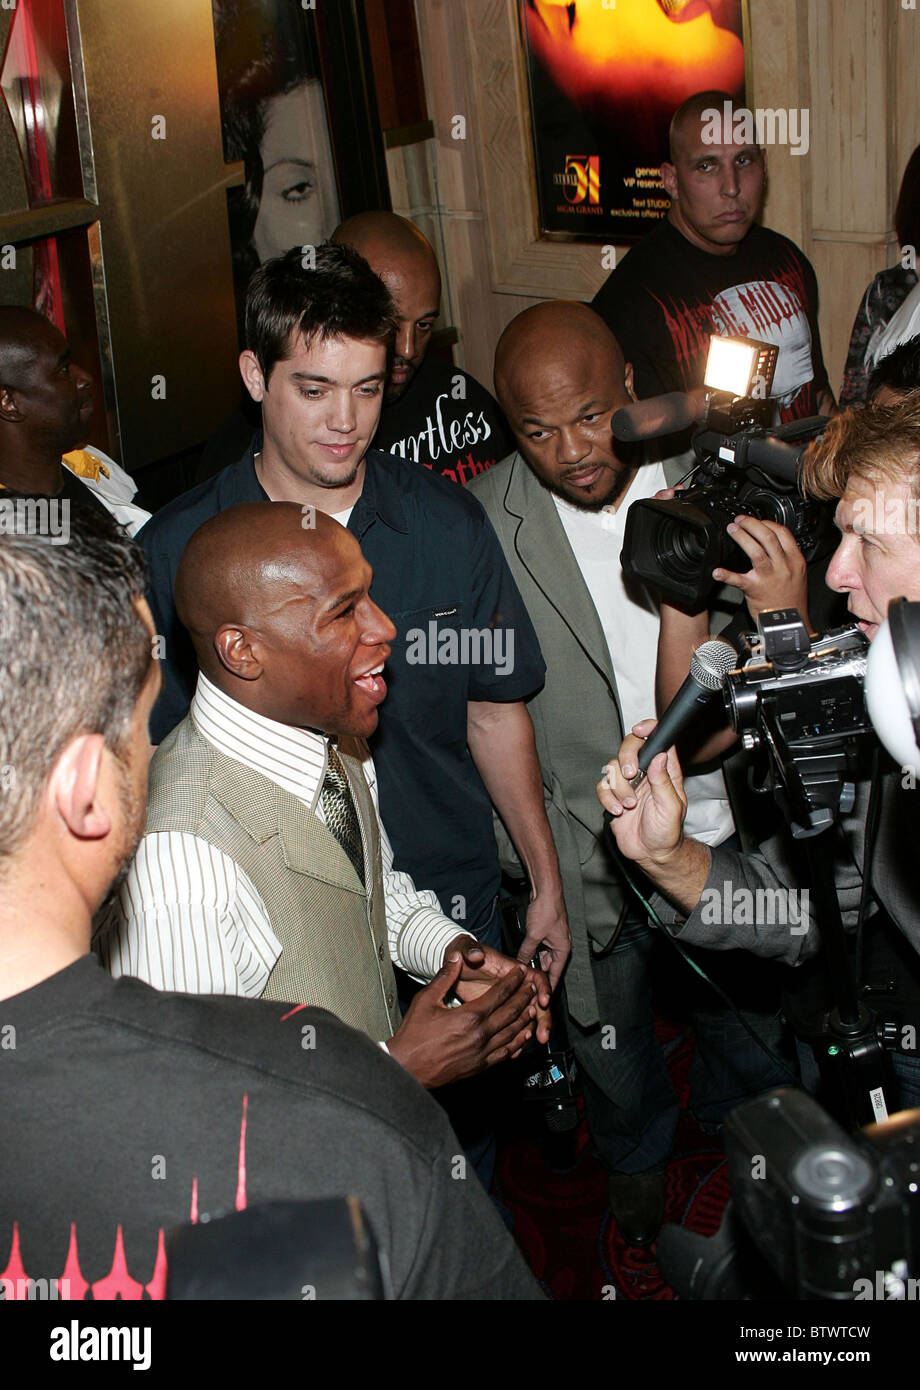 Floyd Mayweather Official After-Fight Party - Stock Image